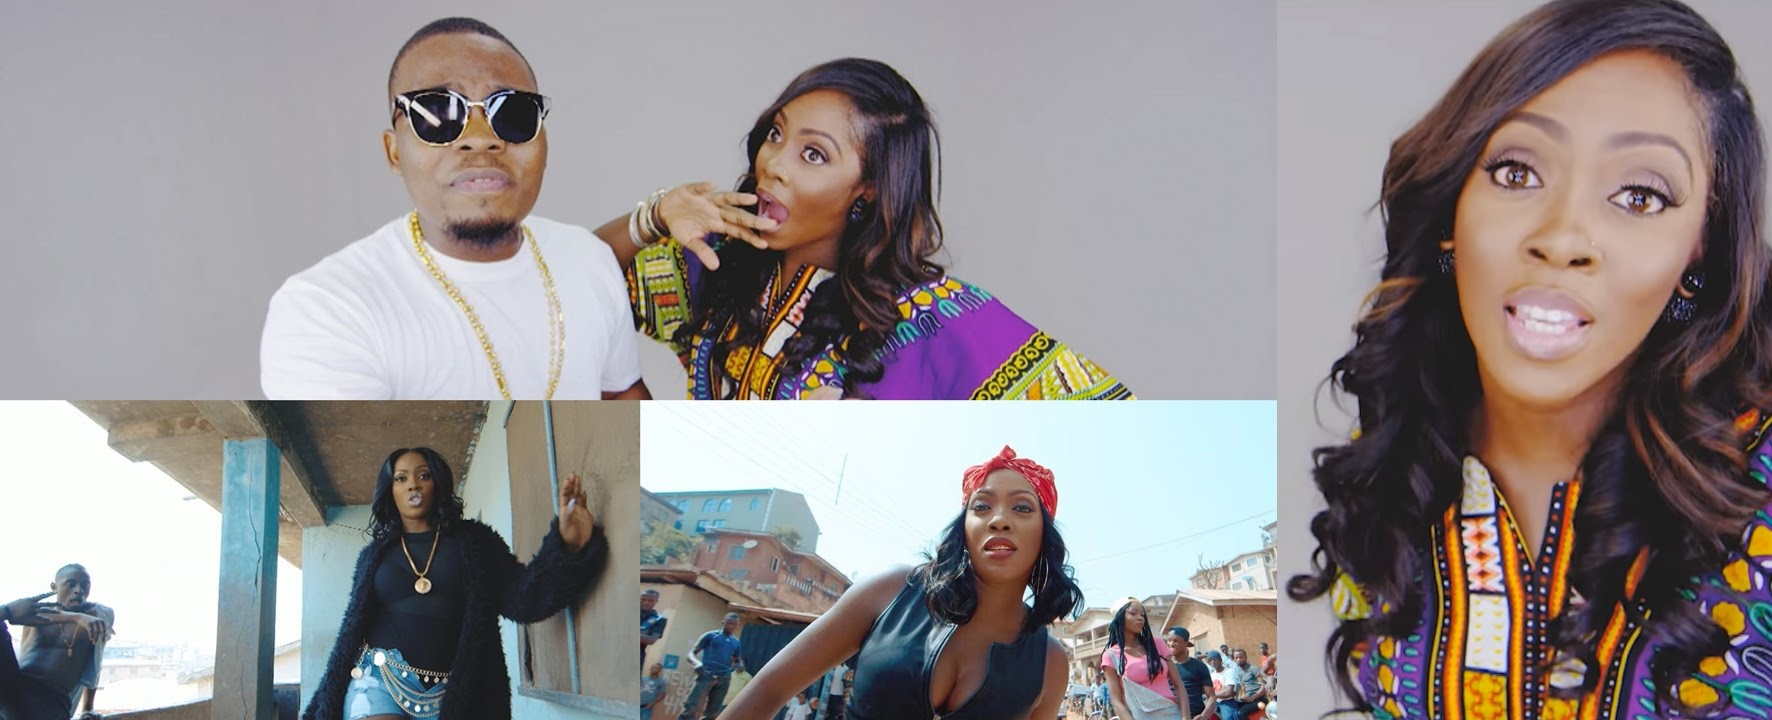 Tiwa Savage Olamide Standing Ovation video